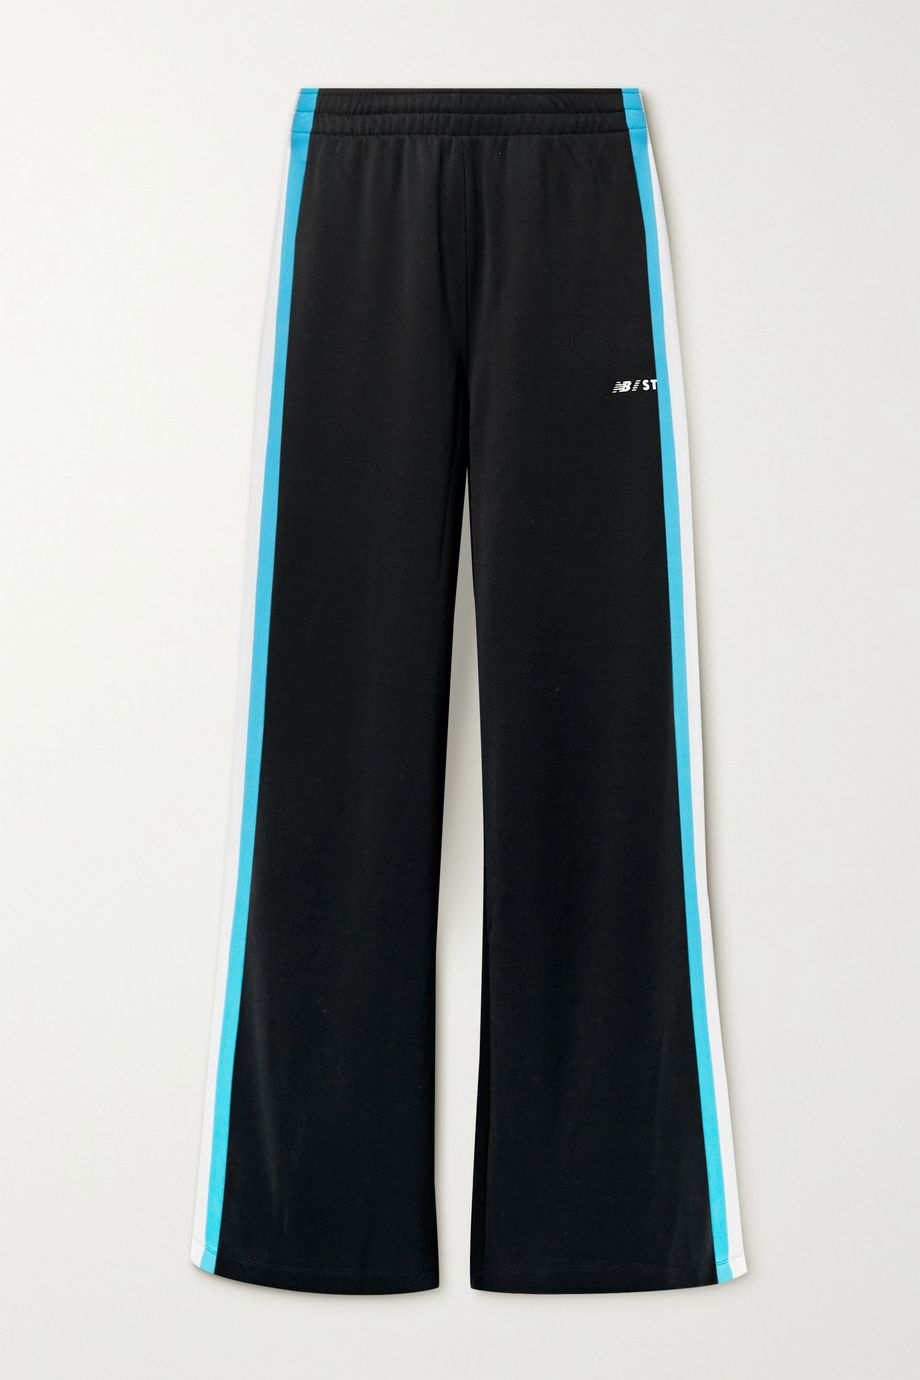 STAUD + New Balance striped stretch-jersey track pants